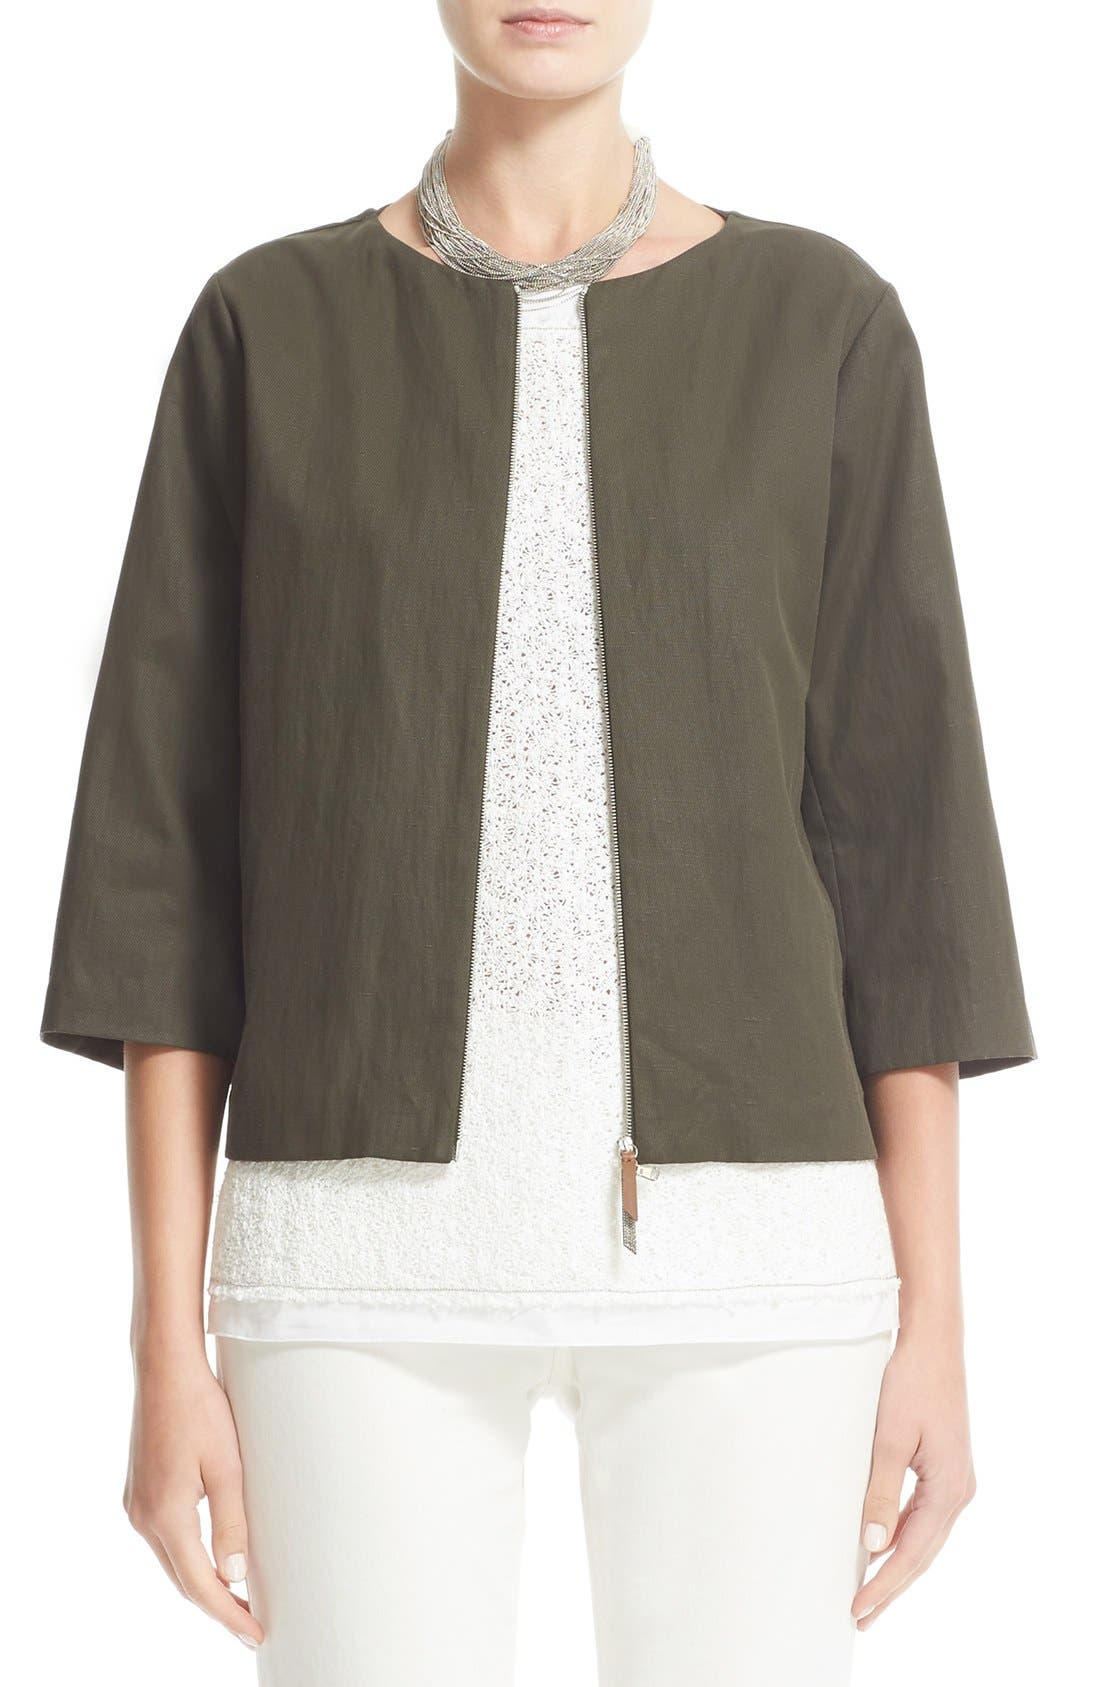 FABIANA FILIPPI Coated Cotton Blend Jacket